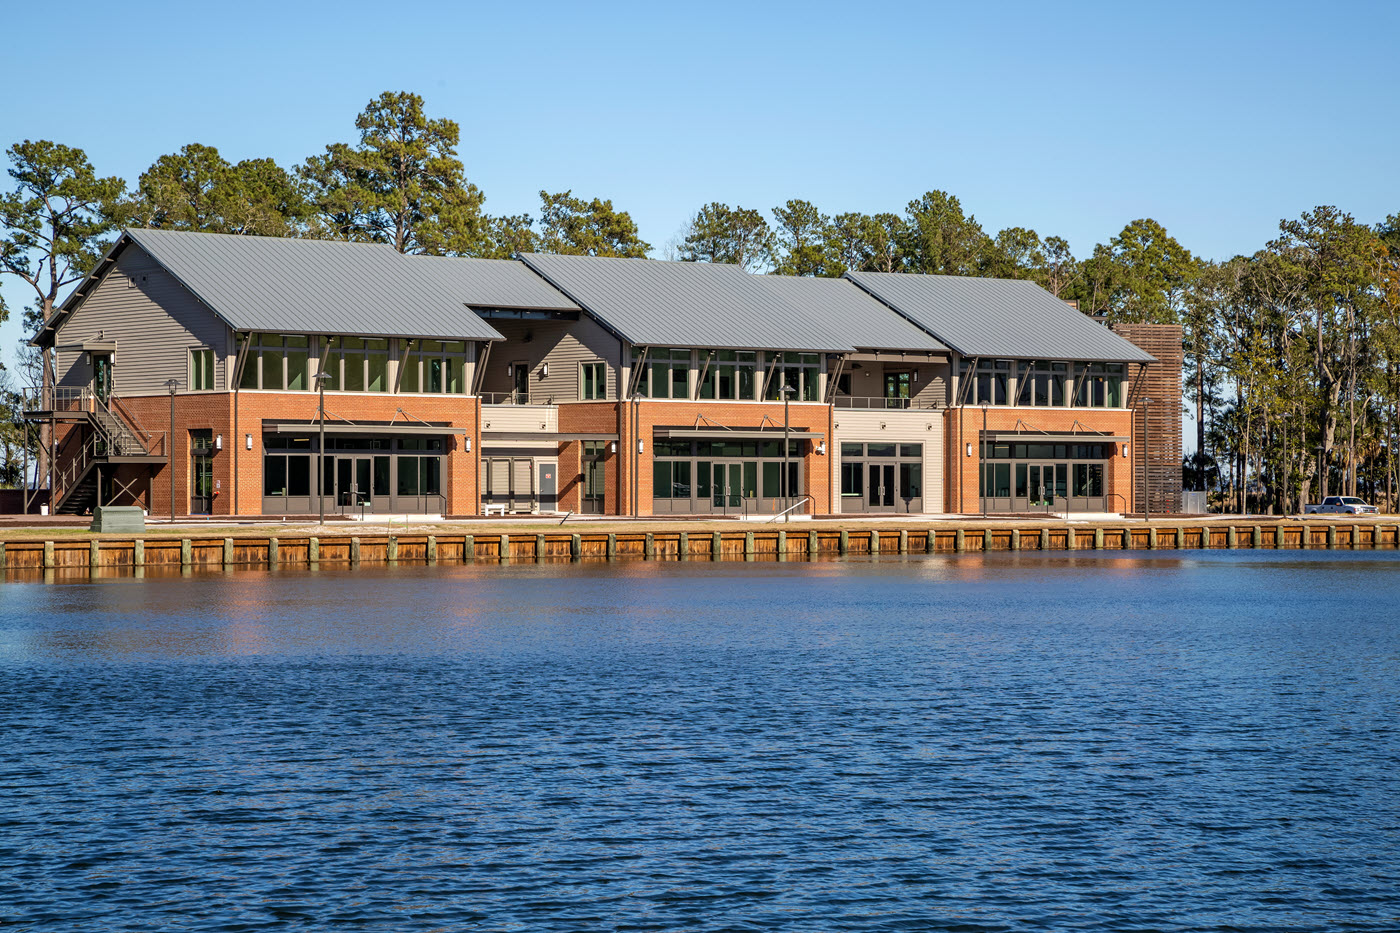 Modern Industrial style boat launch facility